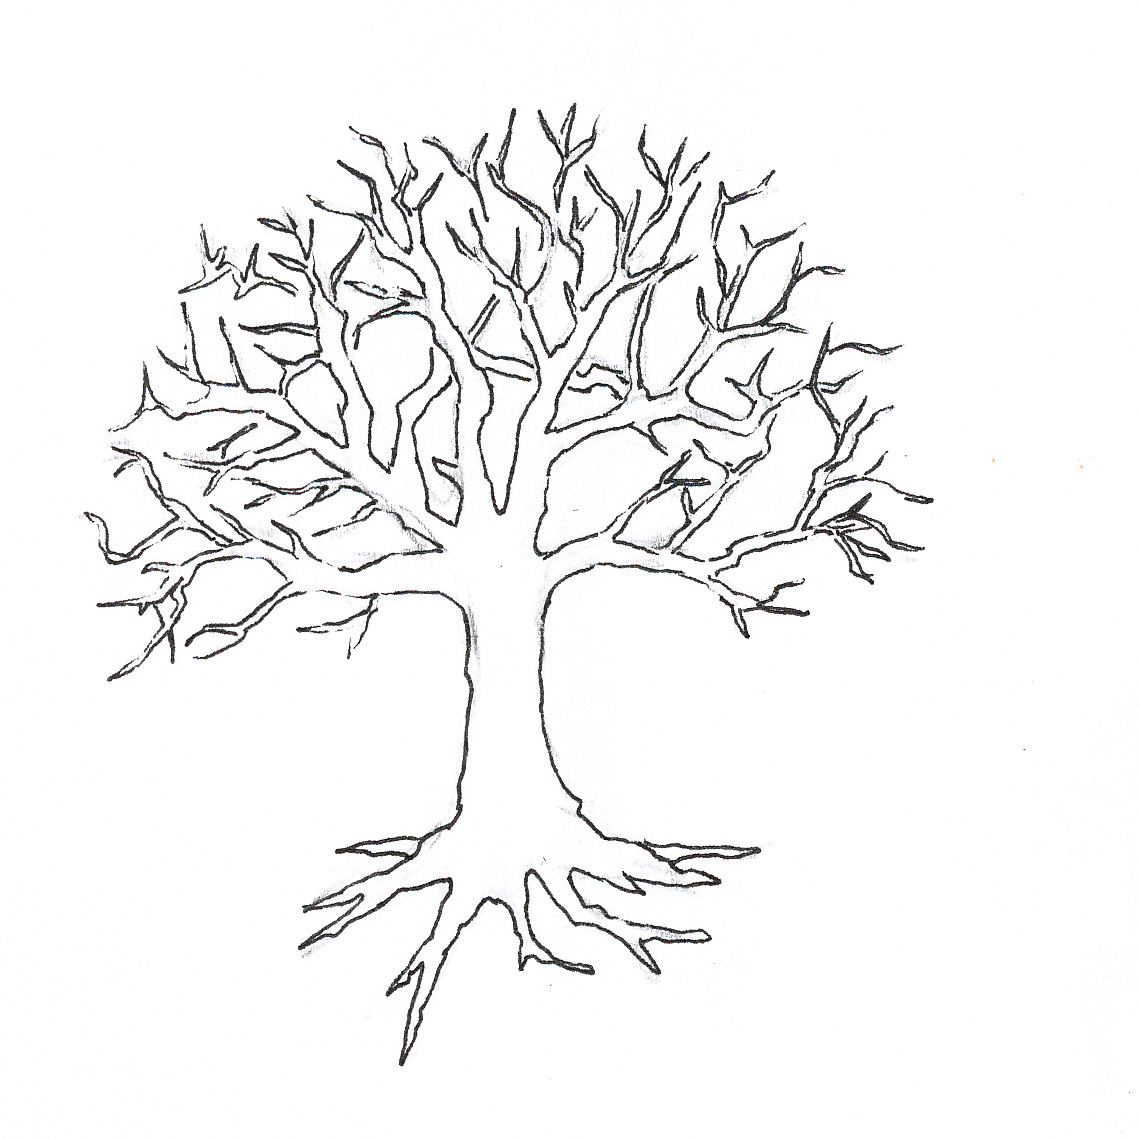 Tree without leaves coloring page to print and download for kids for